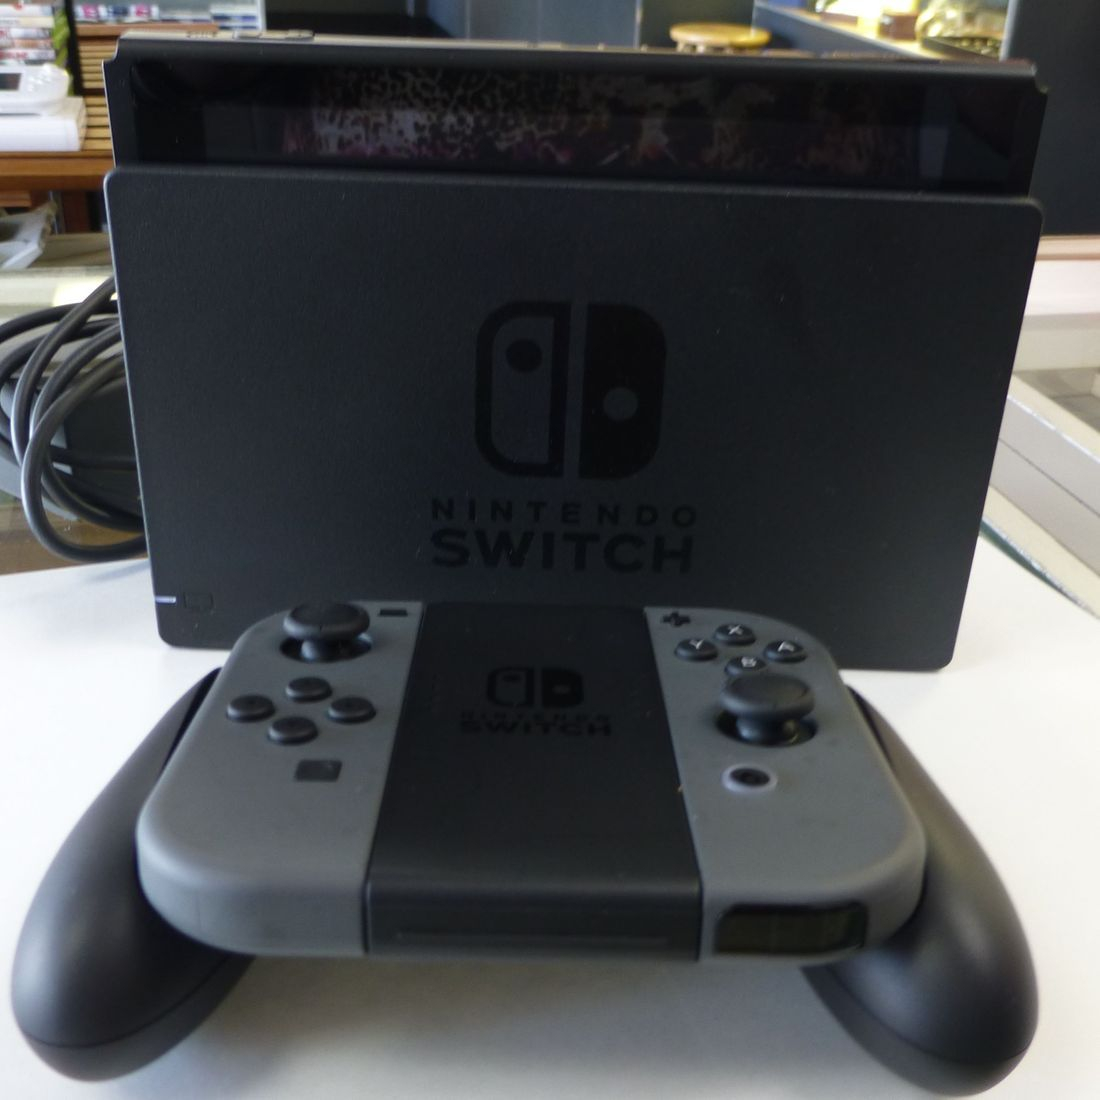 Black Nintendo Switch Console Joy-Cons And Dock